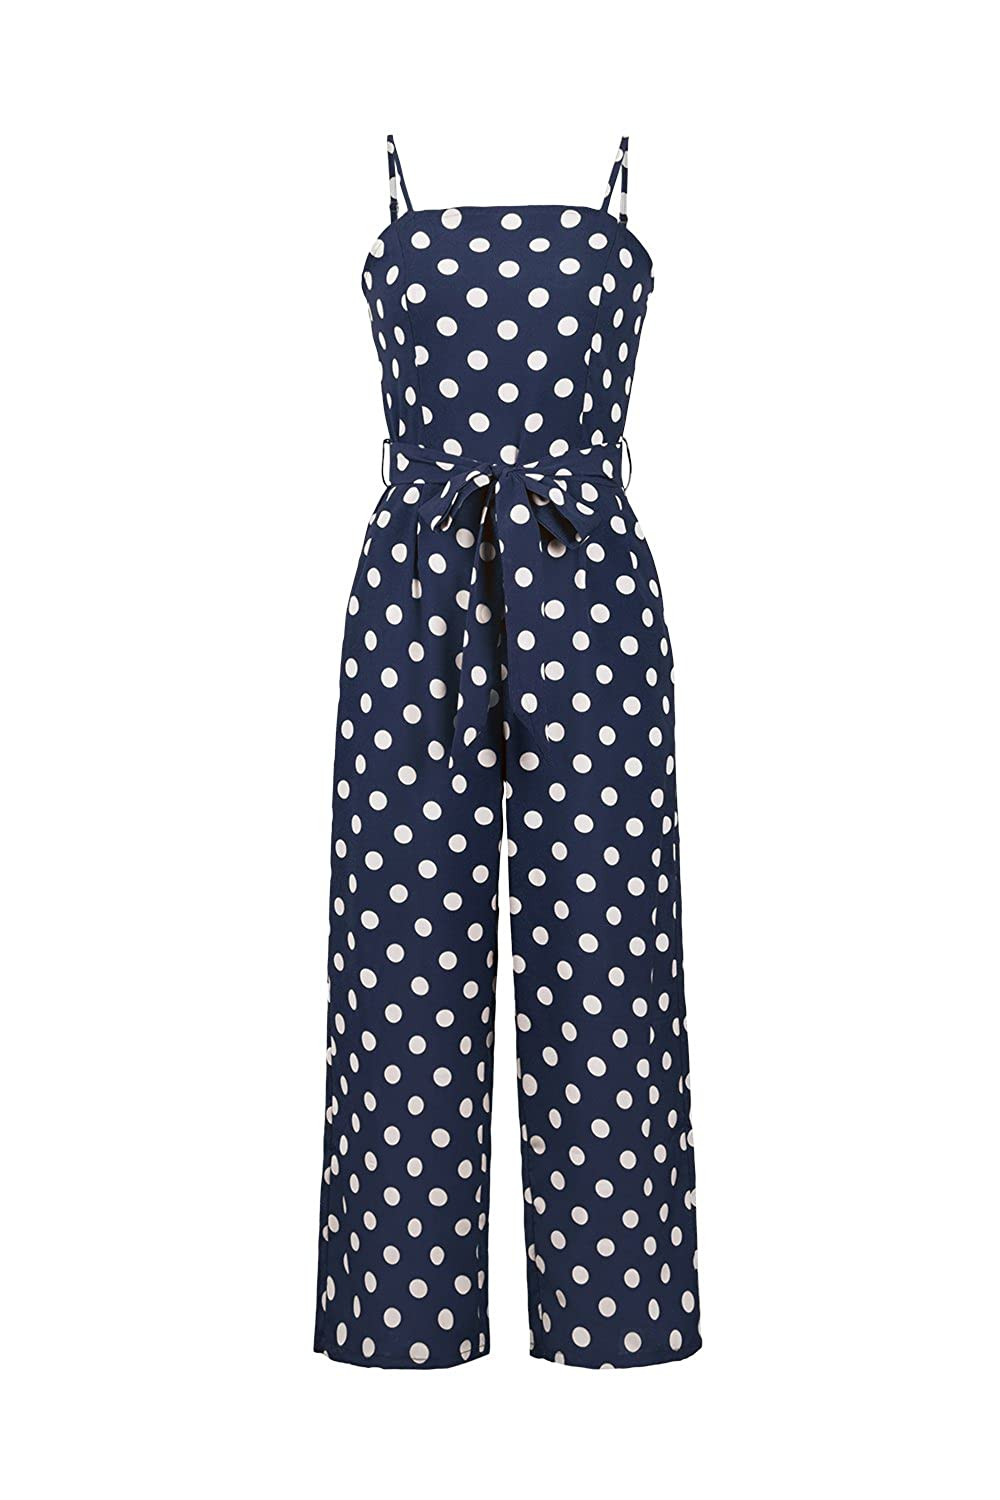 cffe2a246ff97 Online Cheap wholesale Womens Summer Beach Polka Dots Strap Bow Knot Long  Pants Backless Jumpsuit Suppliers